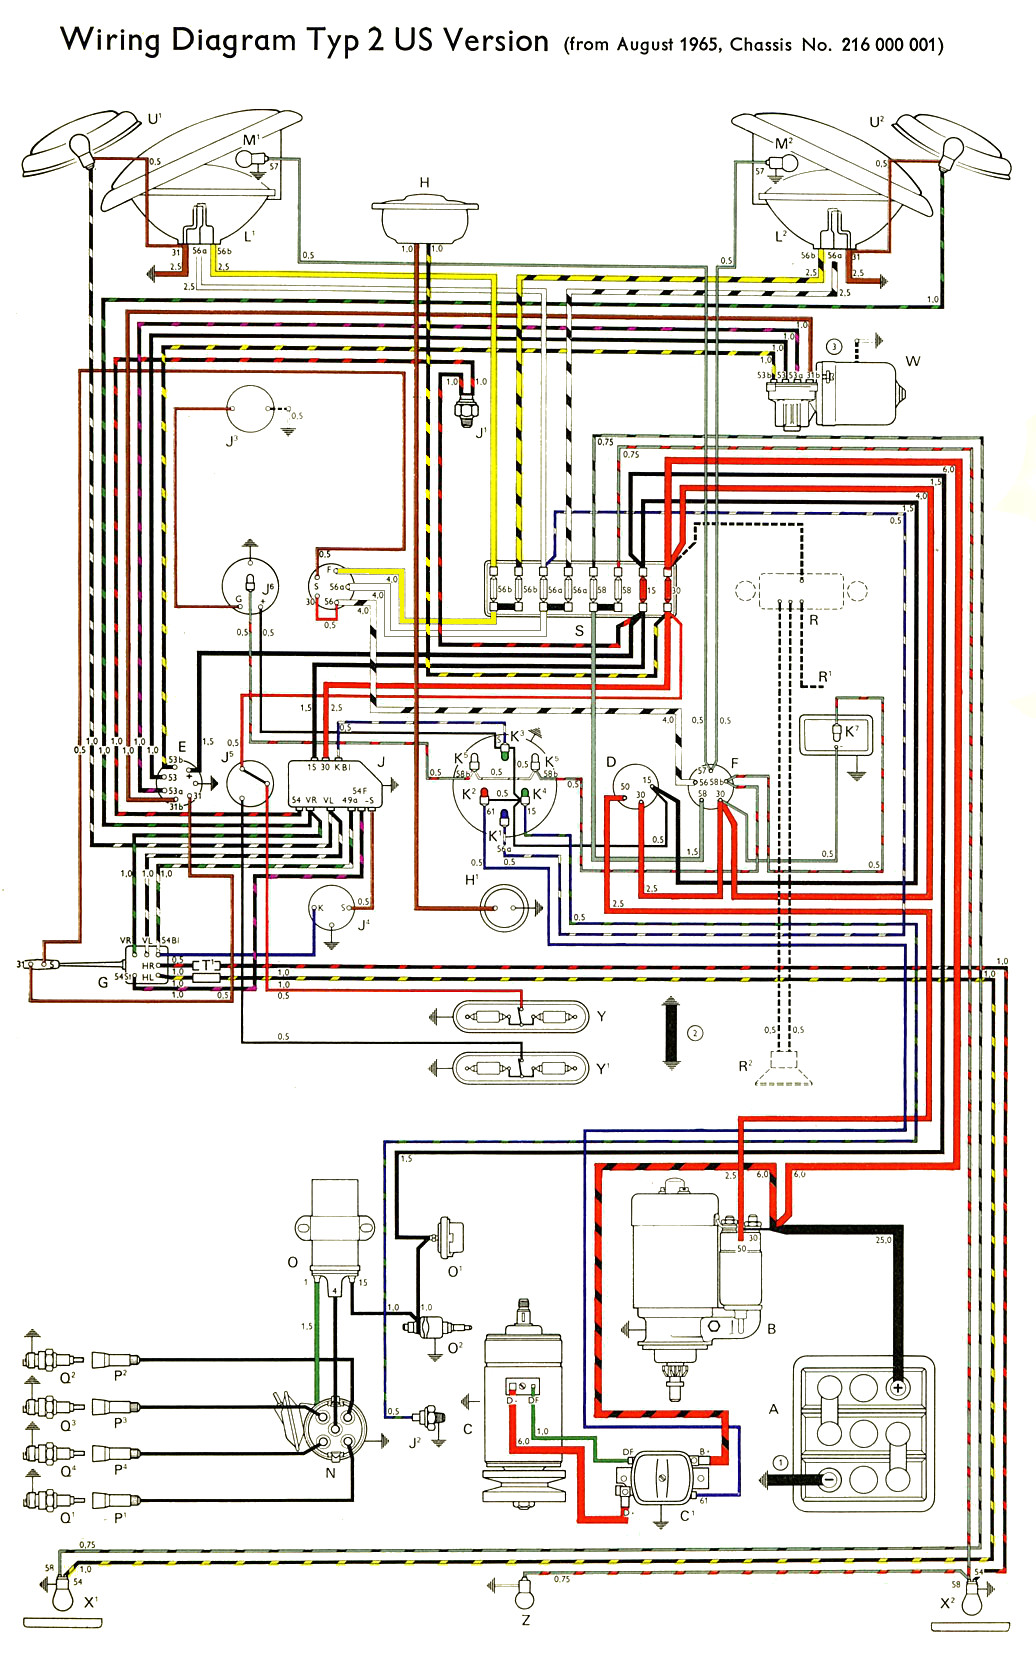 A09D 1981 Vanagon Headlight Relay Wiring Diagram | Wiring LibraryWiring Library